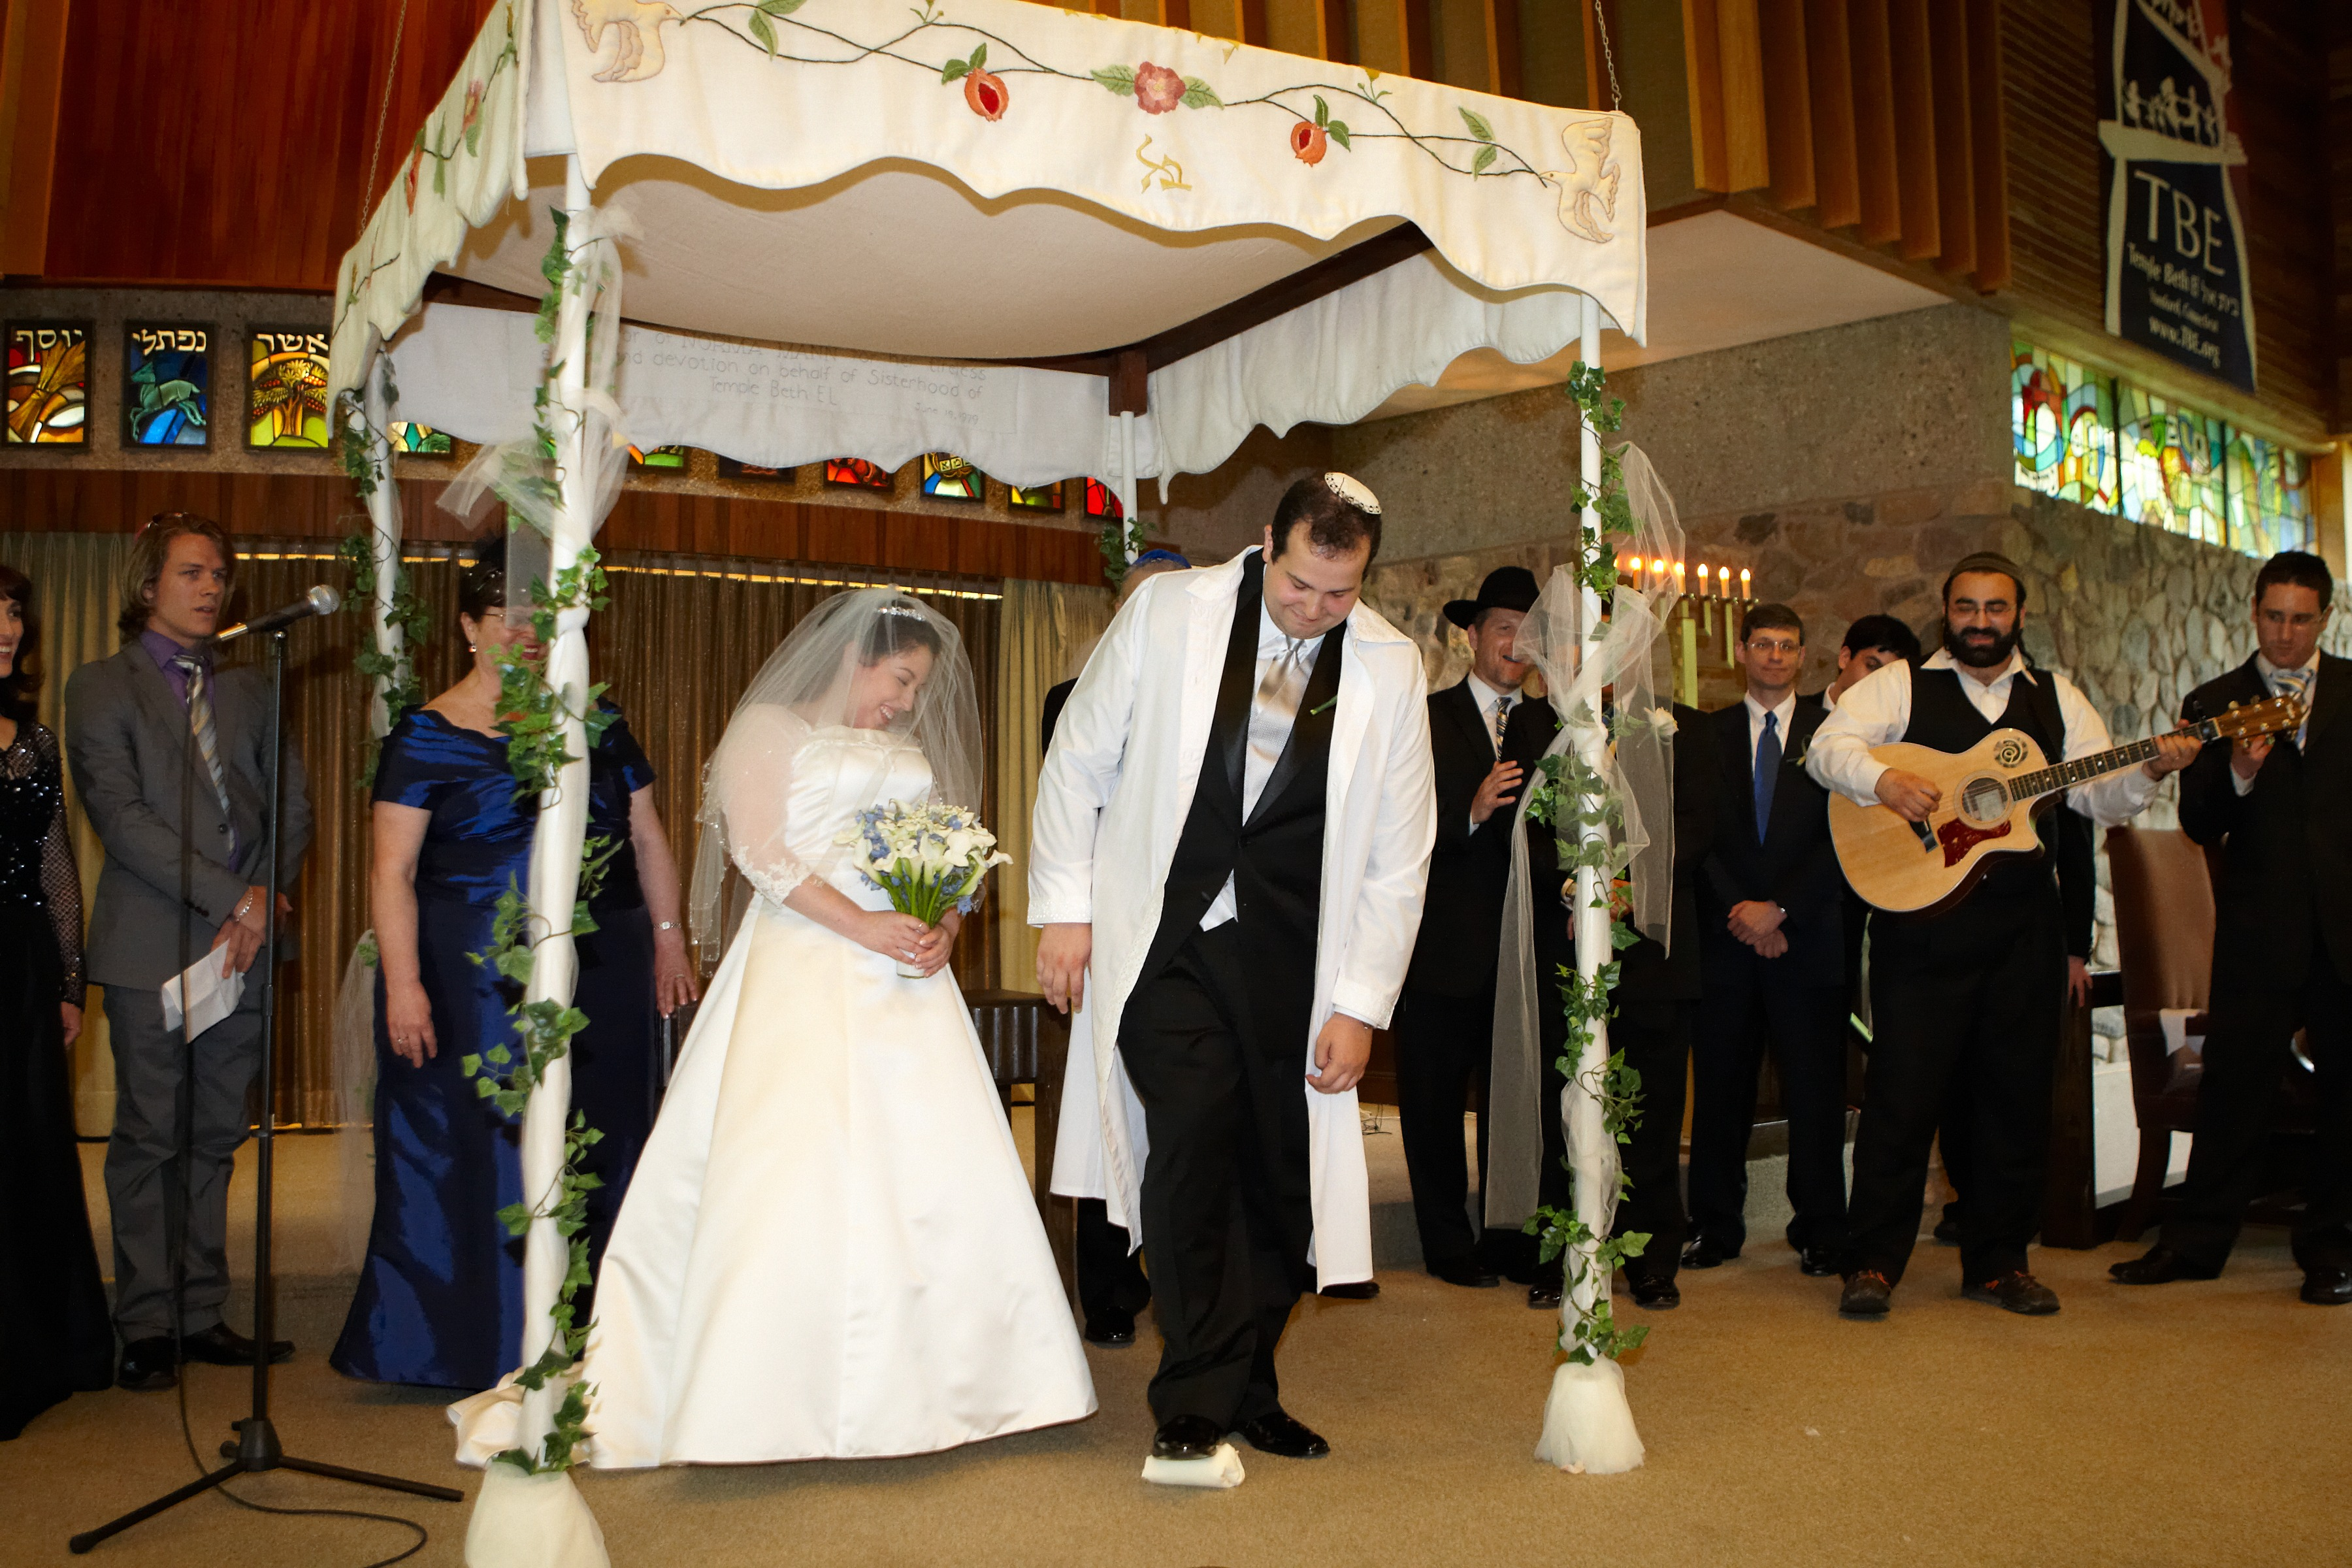 LE Marriage - Wedding Ceremony Rituals